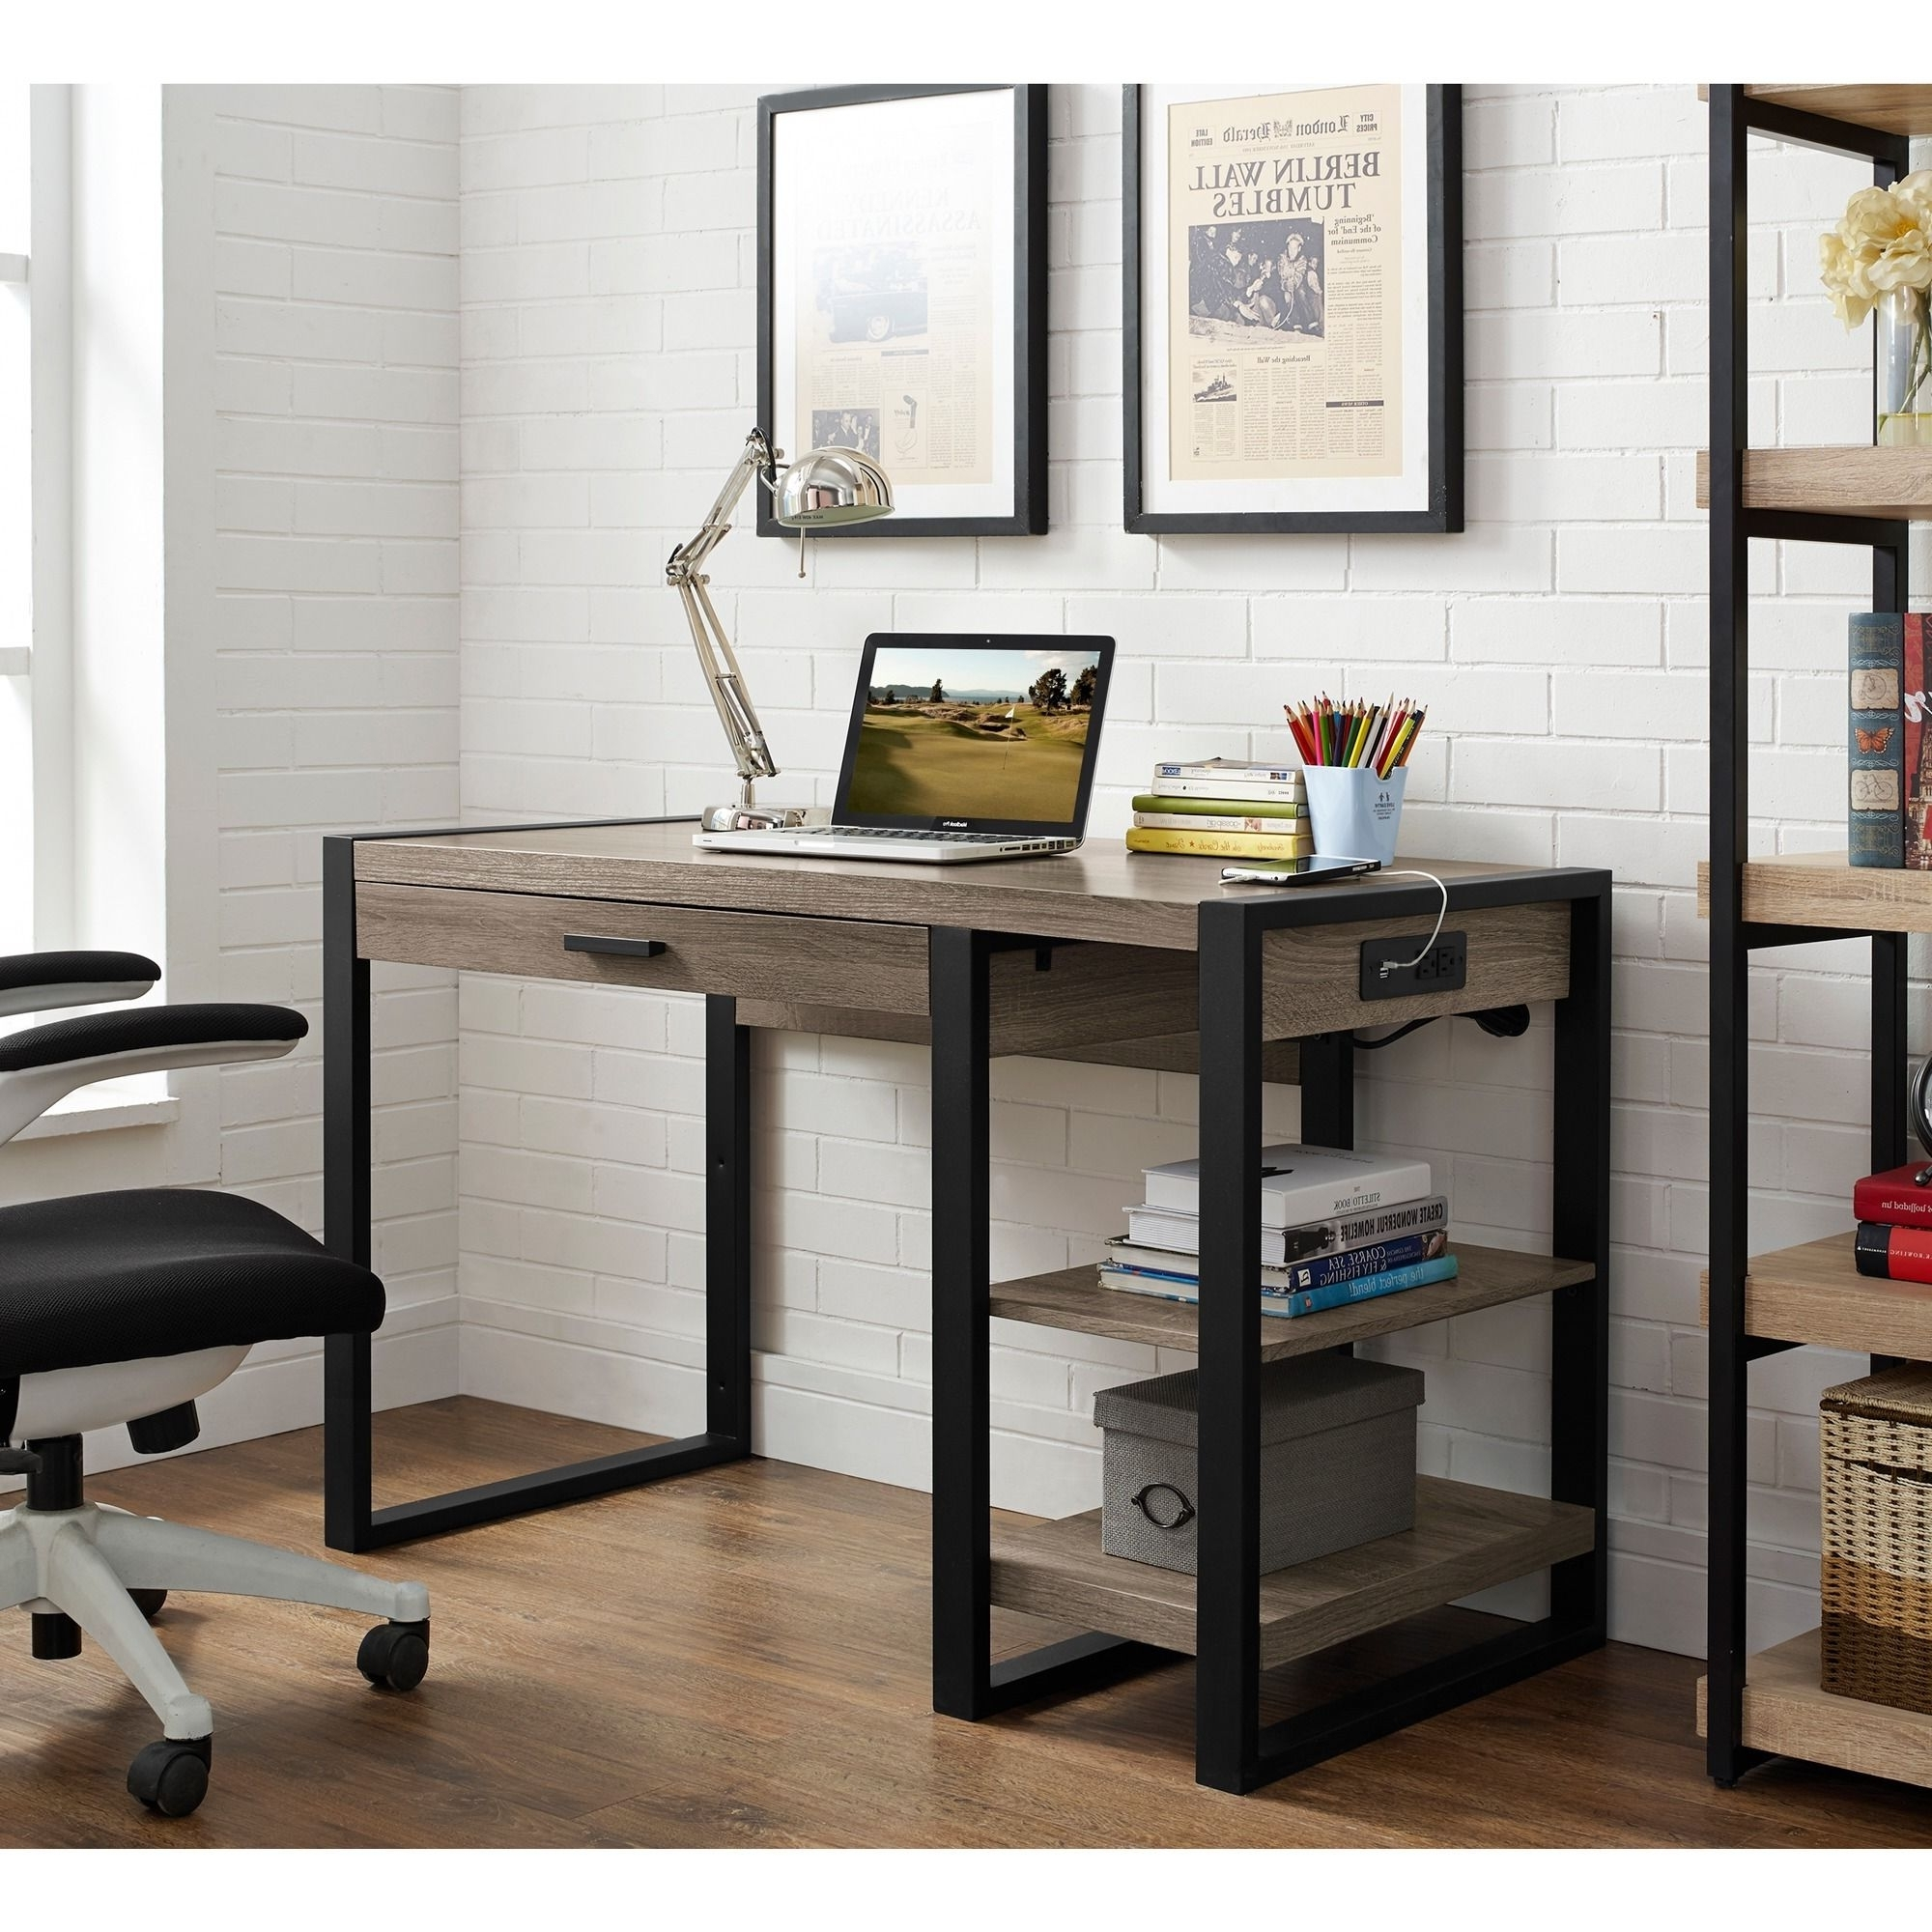 Computer Desks With Usb Ports Regarding Most Recent Complete Your Home Office With This Urban Tech Computer Desk (View 7 of 20)